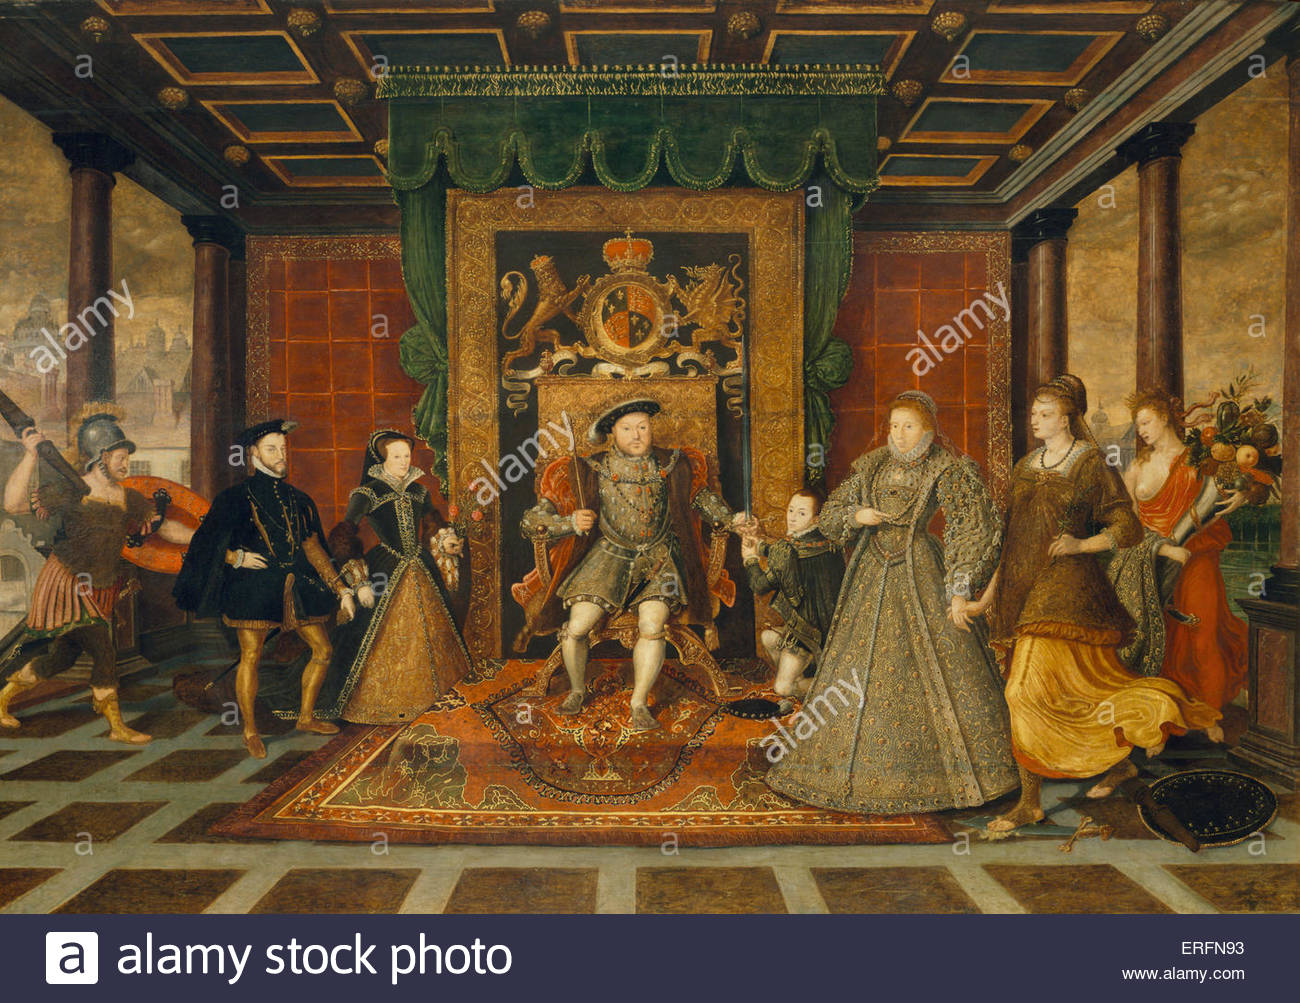 The Family of Henry VIII: an Allegory of the Tudor Succession, by Lucas de Heere, c.1572 Painting. Flemish painter, - Stock Image